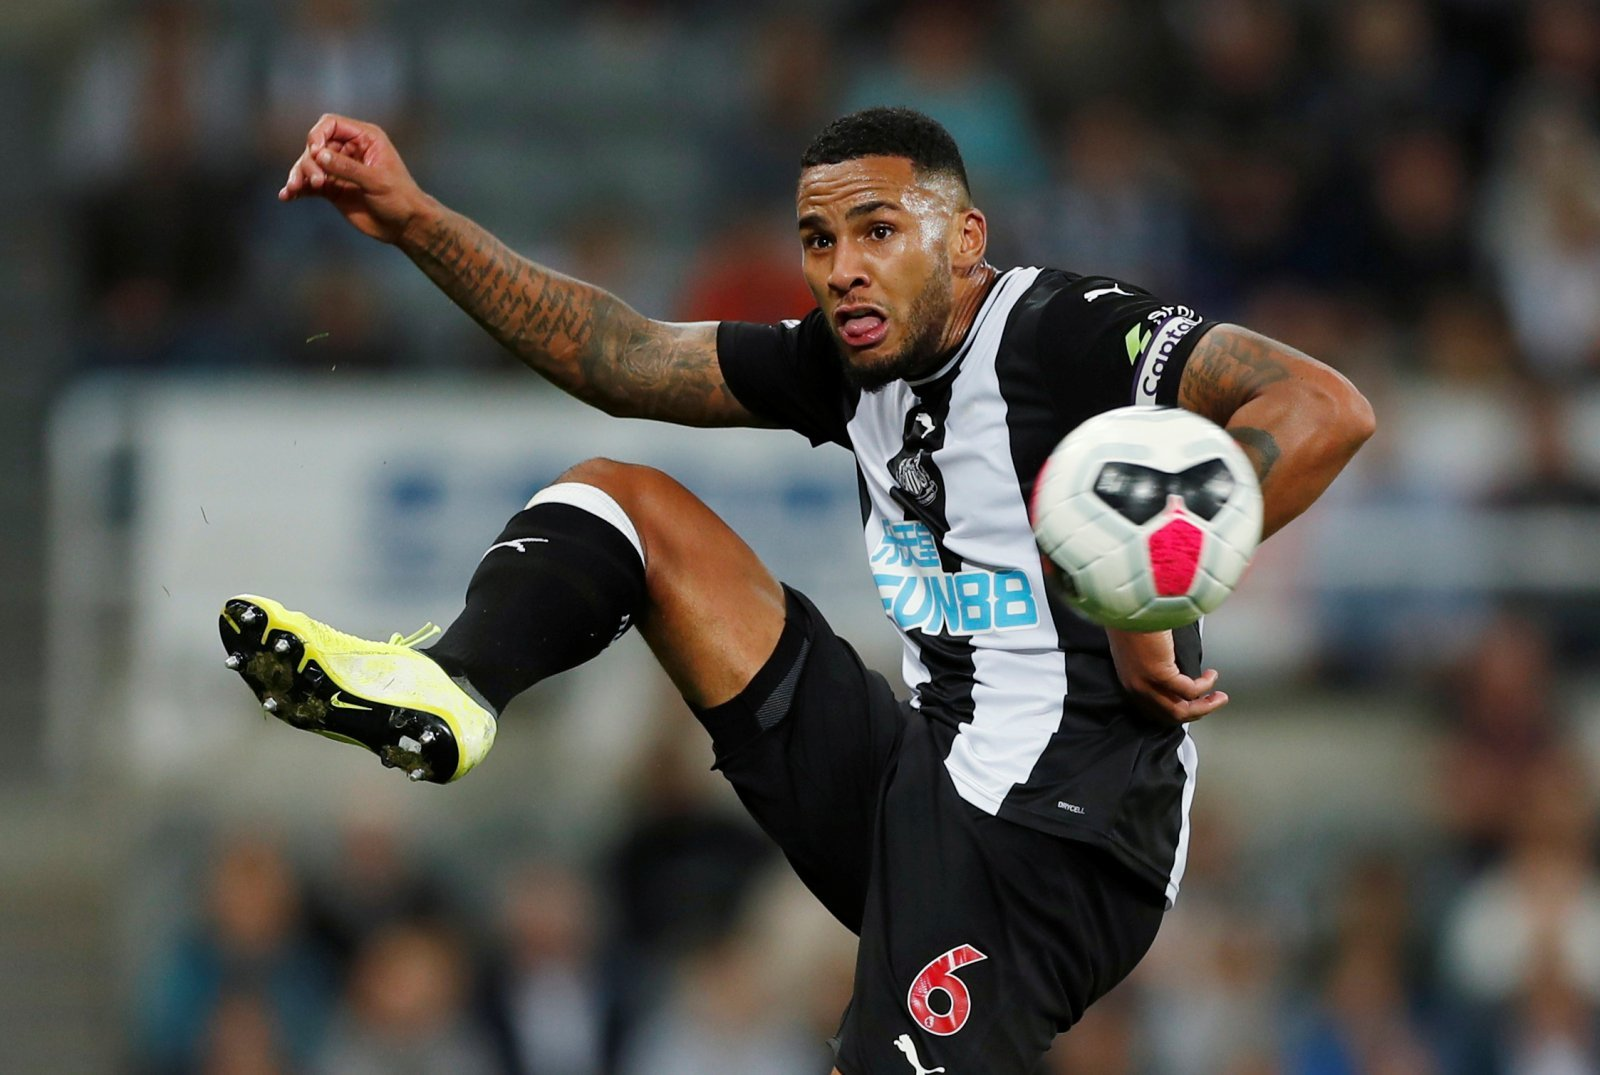 Newcastle United: Jamaal Lascelles claims Chelsea's youngsters lack experience